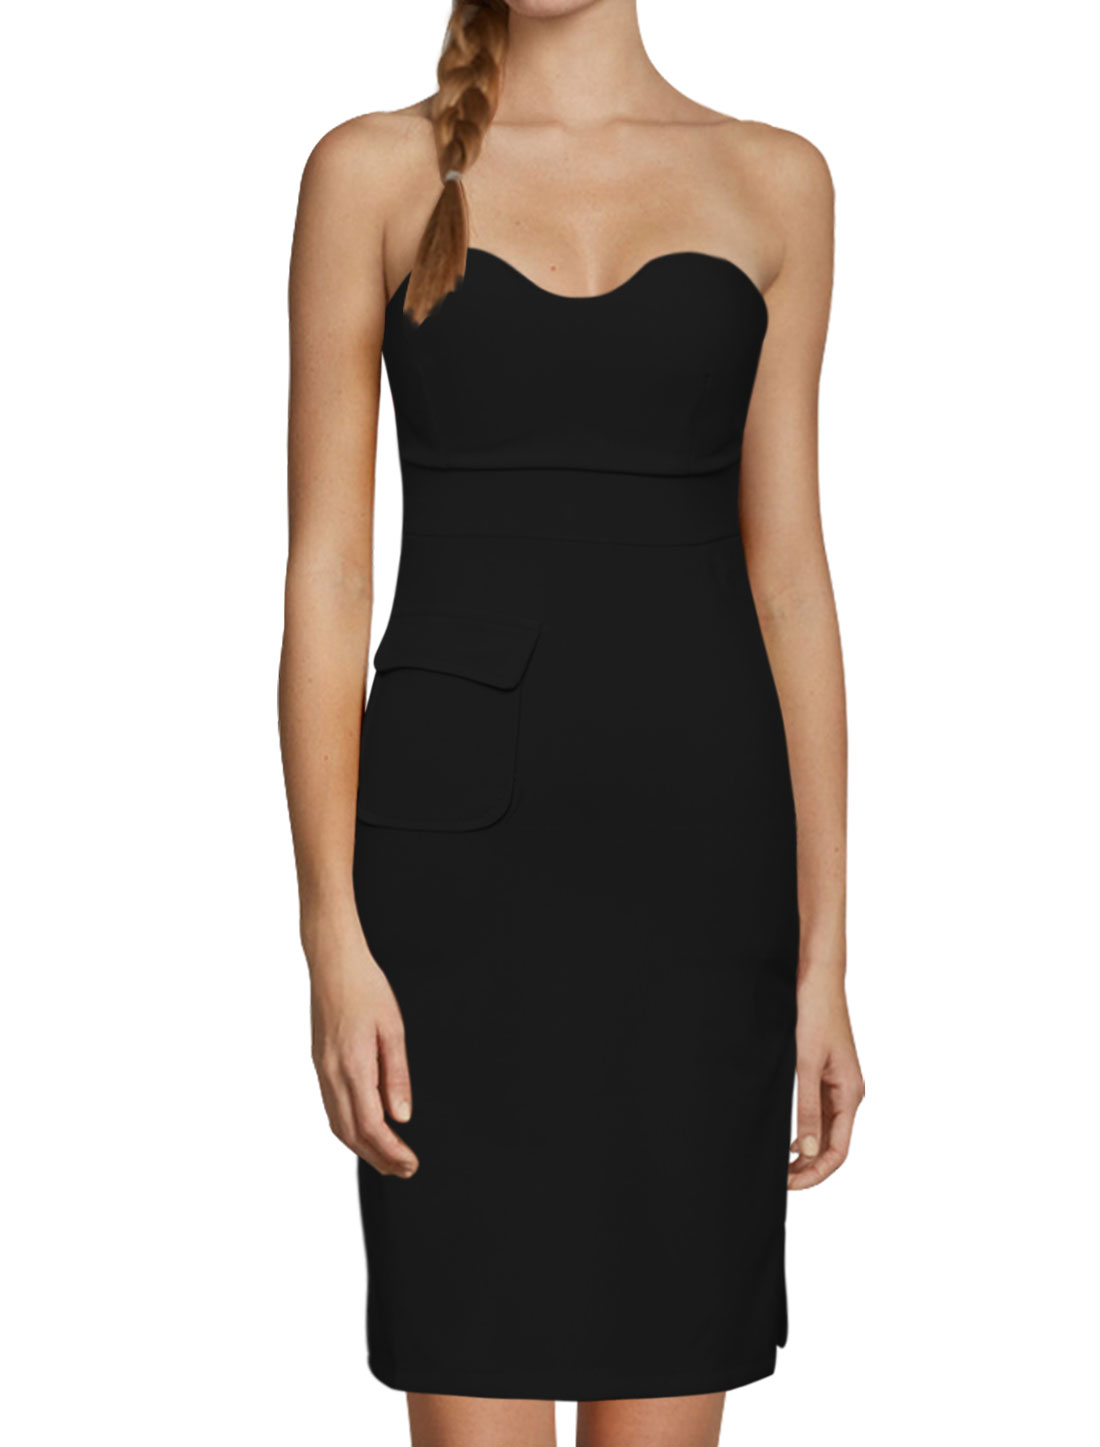 Women Sweetheart Neckline Flap Pocket Split Sides Strapless Dress Black XS